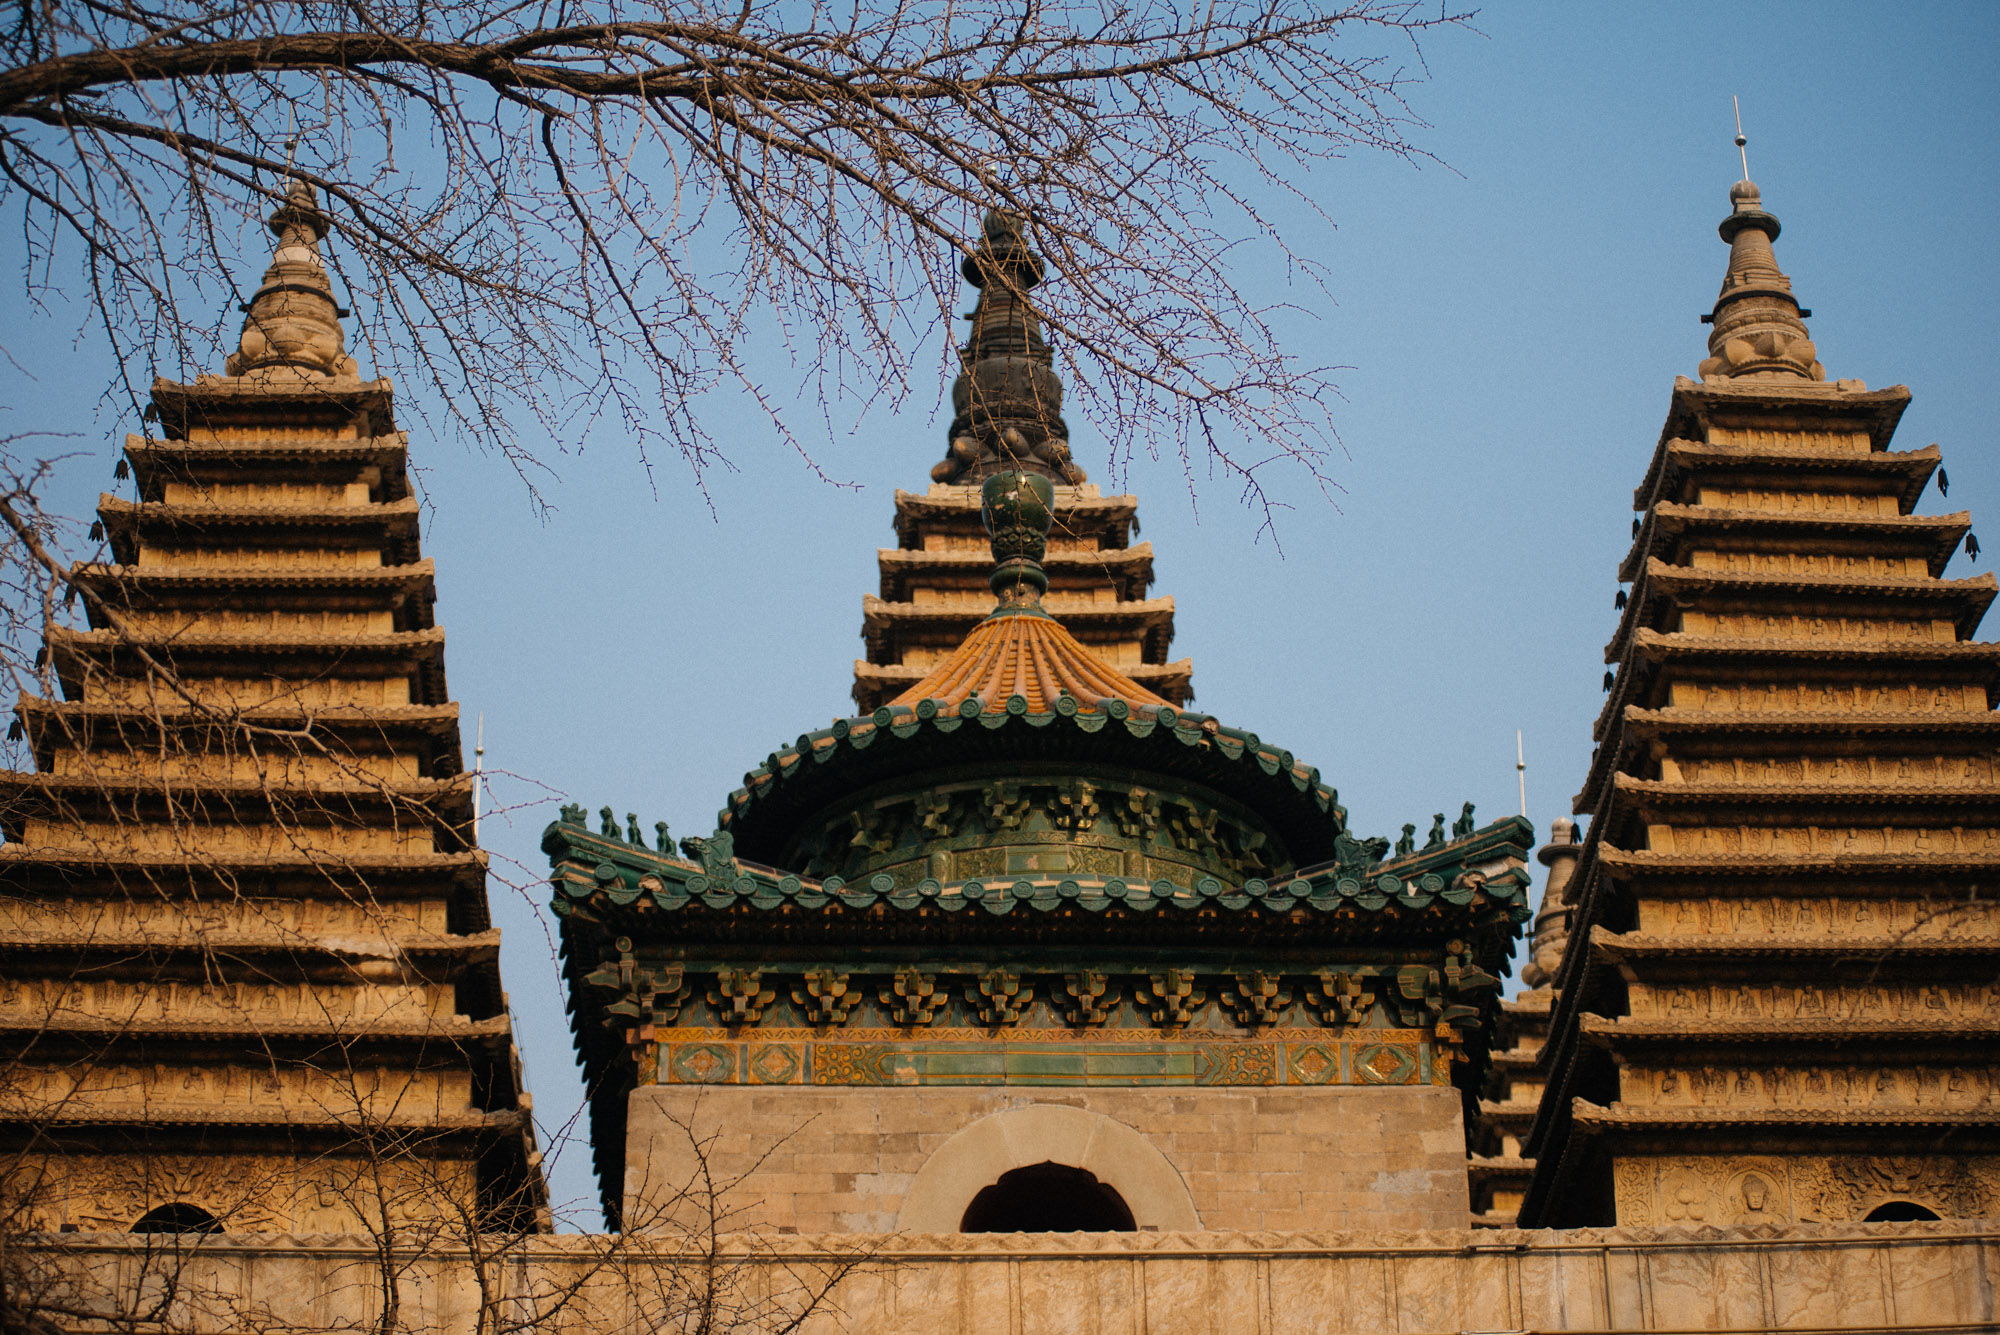 The temple has five pagodas on the top, associated to each of the five Dhyani Buddhas. In the front, with the green tiles, is a Chinese style construction, adding to the uniqueness of this building.